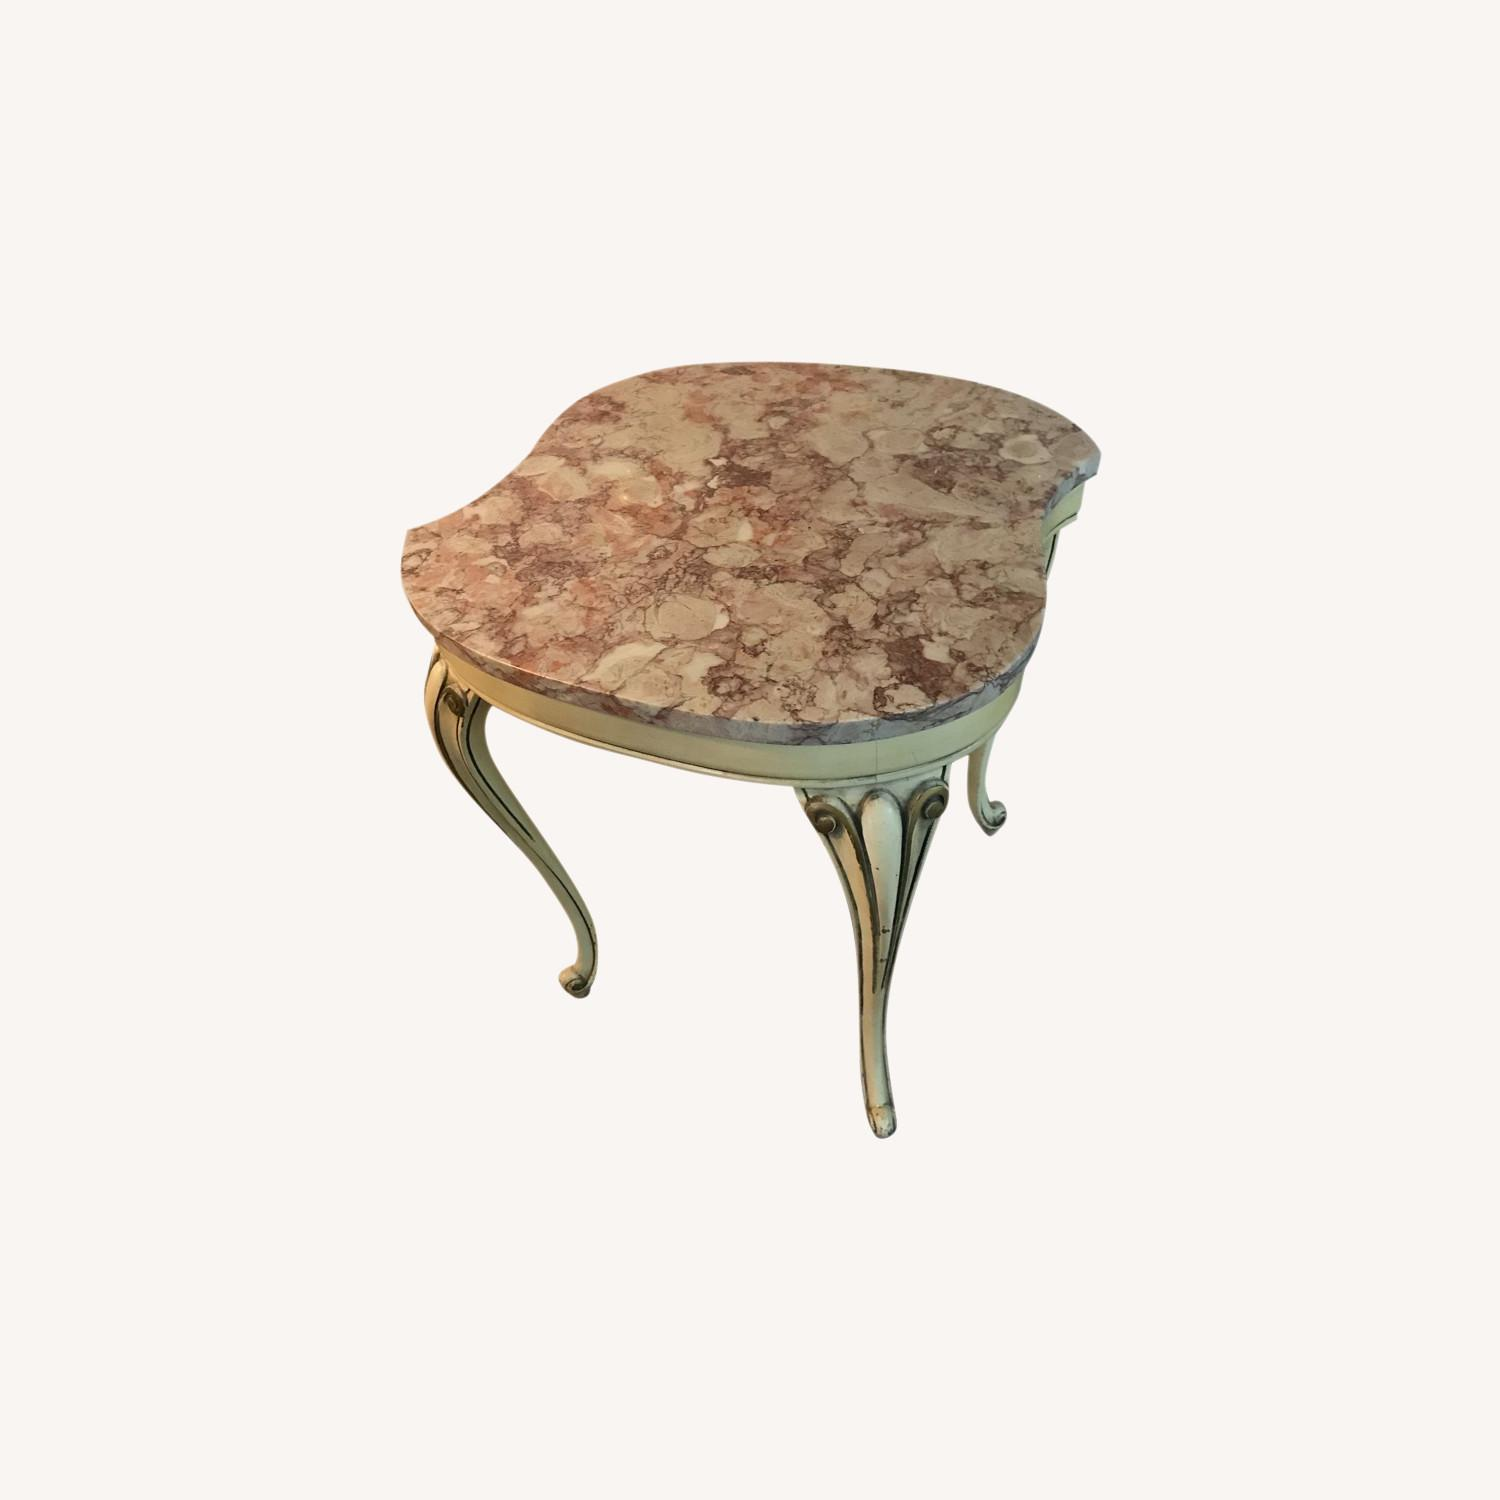 Antique Italian Marble Coffee Table Side Tables - image-0